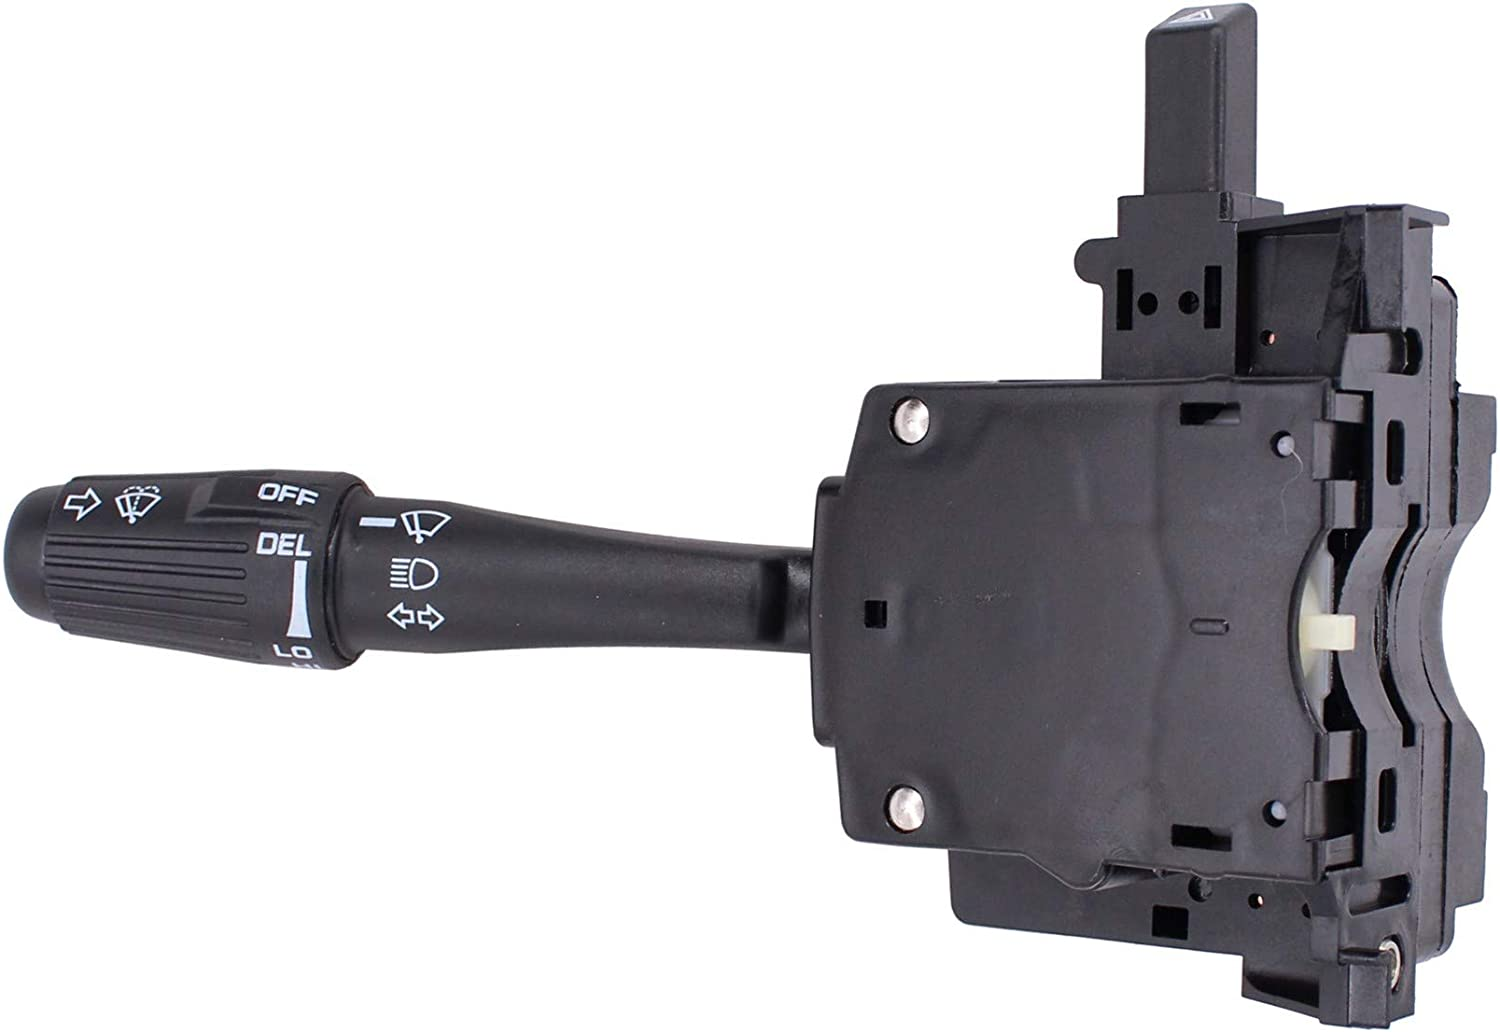 NewYall Turn Signal Wiper High and Our shop most popular Max 51% OFF Dimmer Low Multi Functio Beam